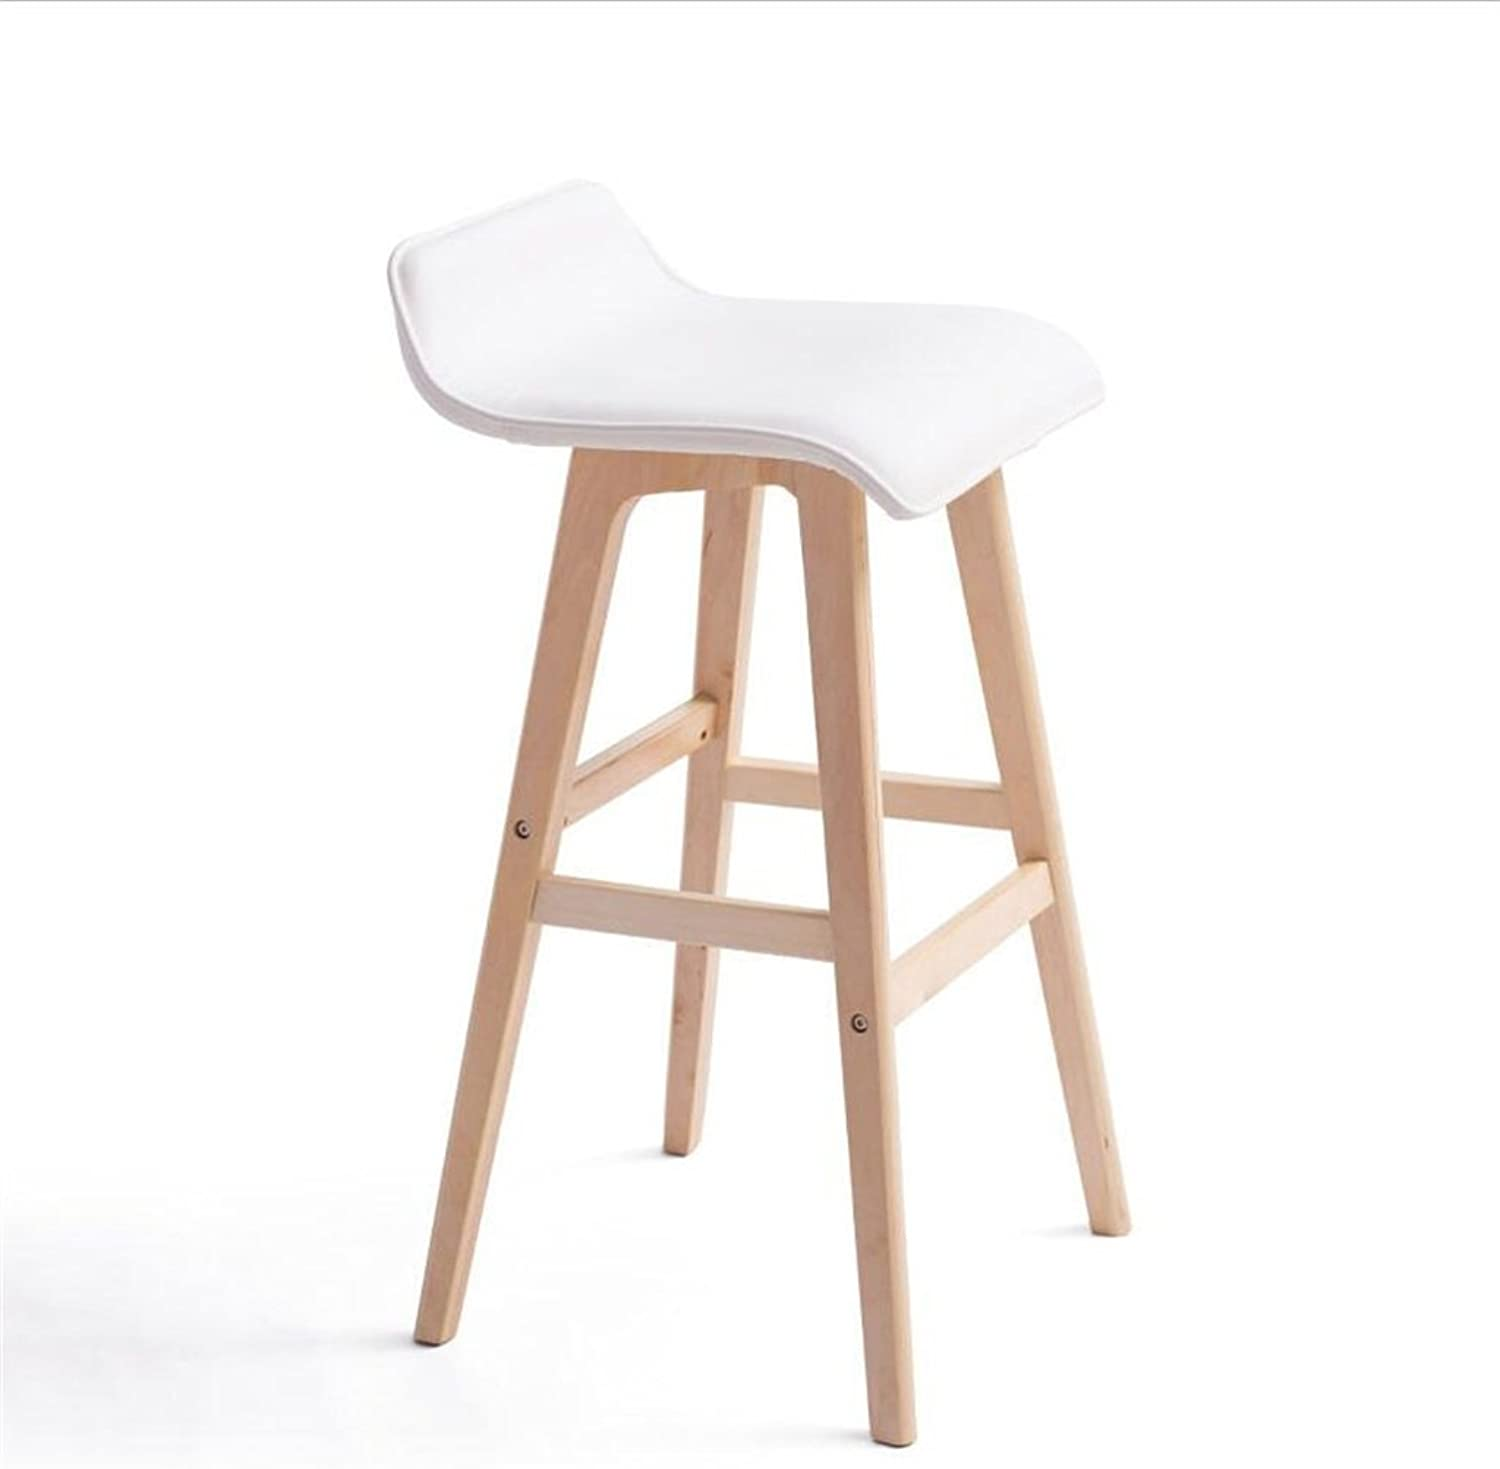 Stools Solid Wood Bar Stools Kitchen Breakfast Dining Chair High Stool with White PU Fabric Seat Barstool Suitable for Family and Business (color   B, Size   40cm40cm65cm)